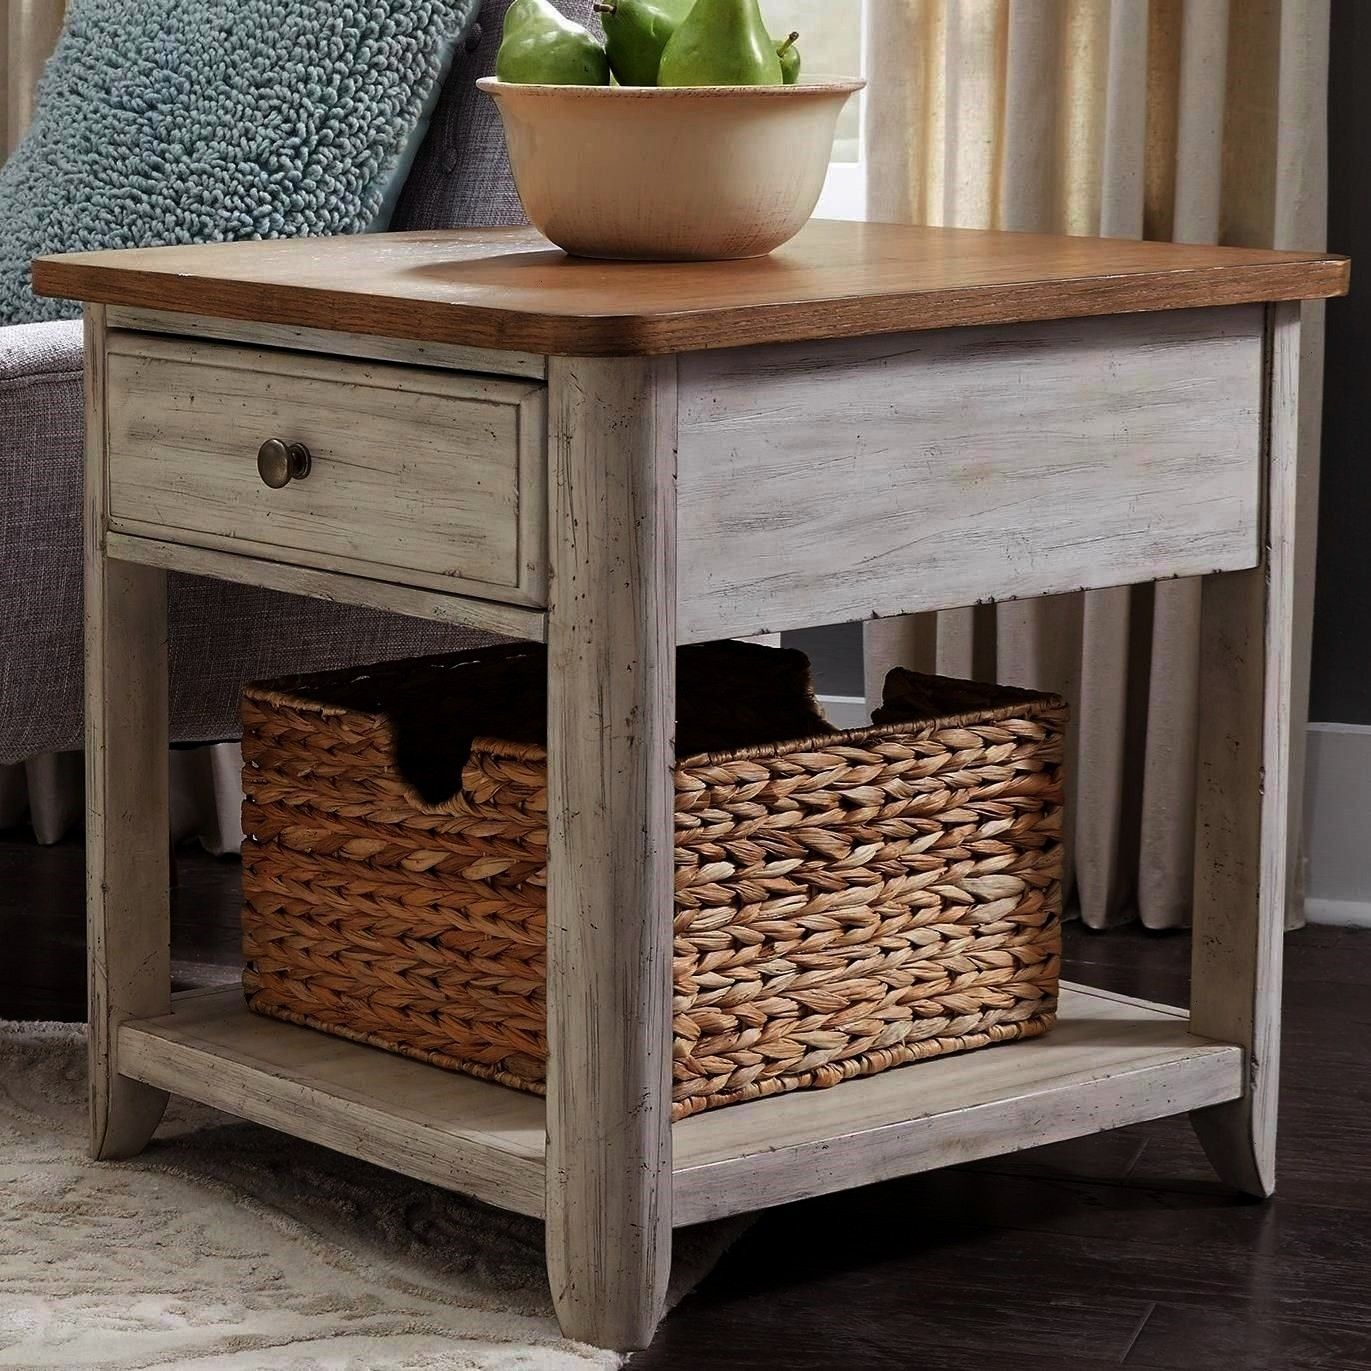 Relaxed Vintage 1 Drawer End Table with Basket by Liberty Furniture at Darvin FurniturebasketFarmhouse Reimagined Relaxed Vintage 1 Drawer End Table with Basket by Libert...